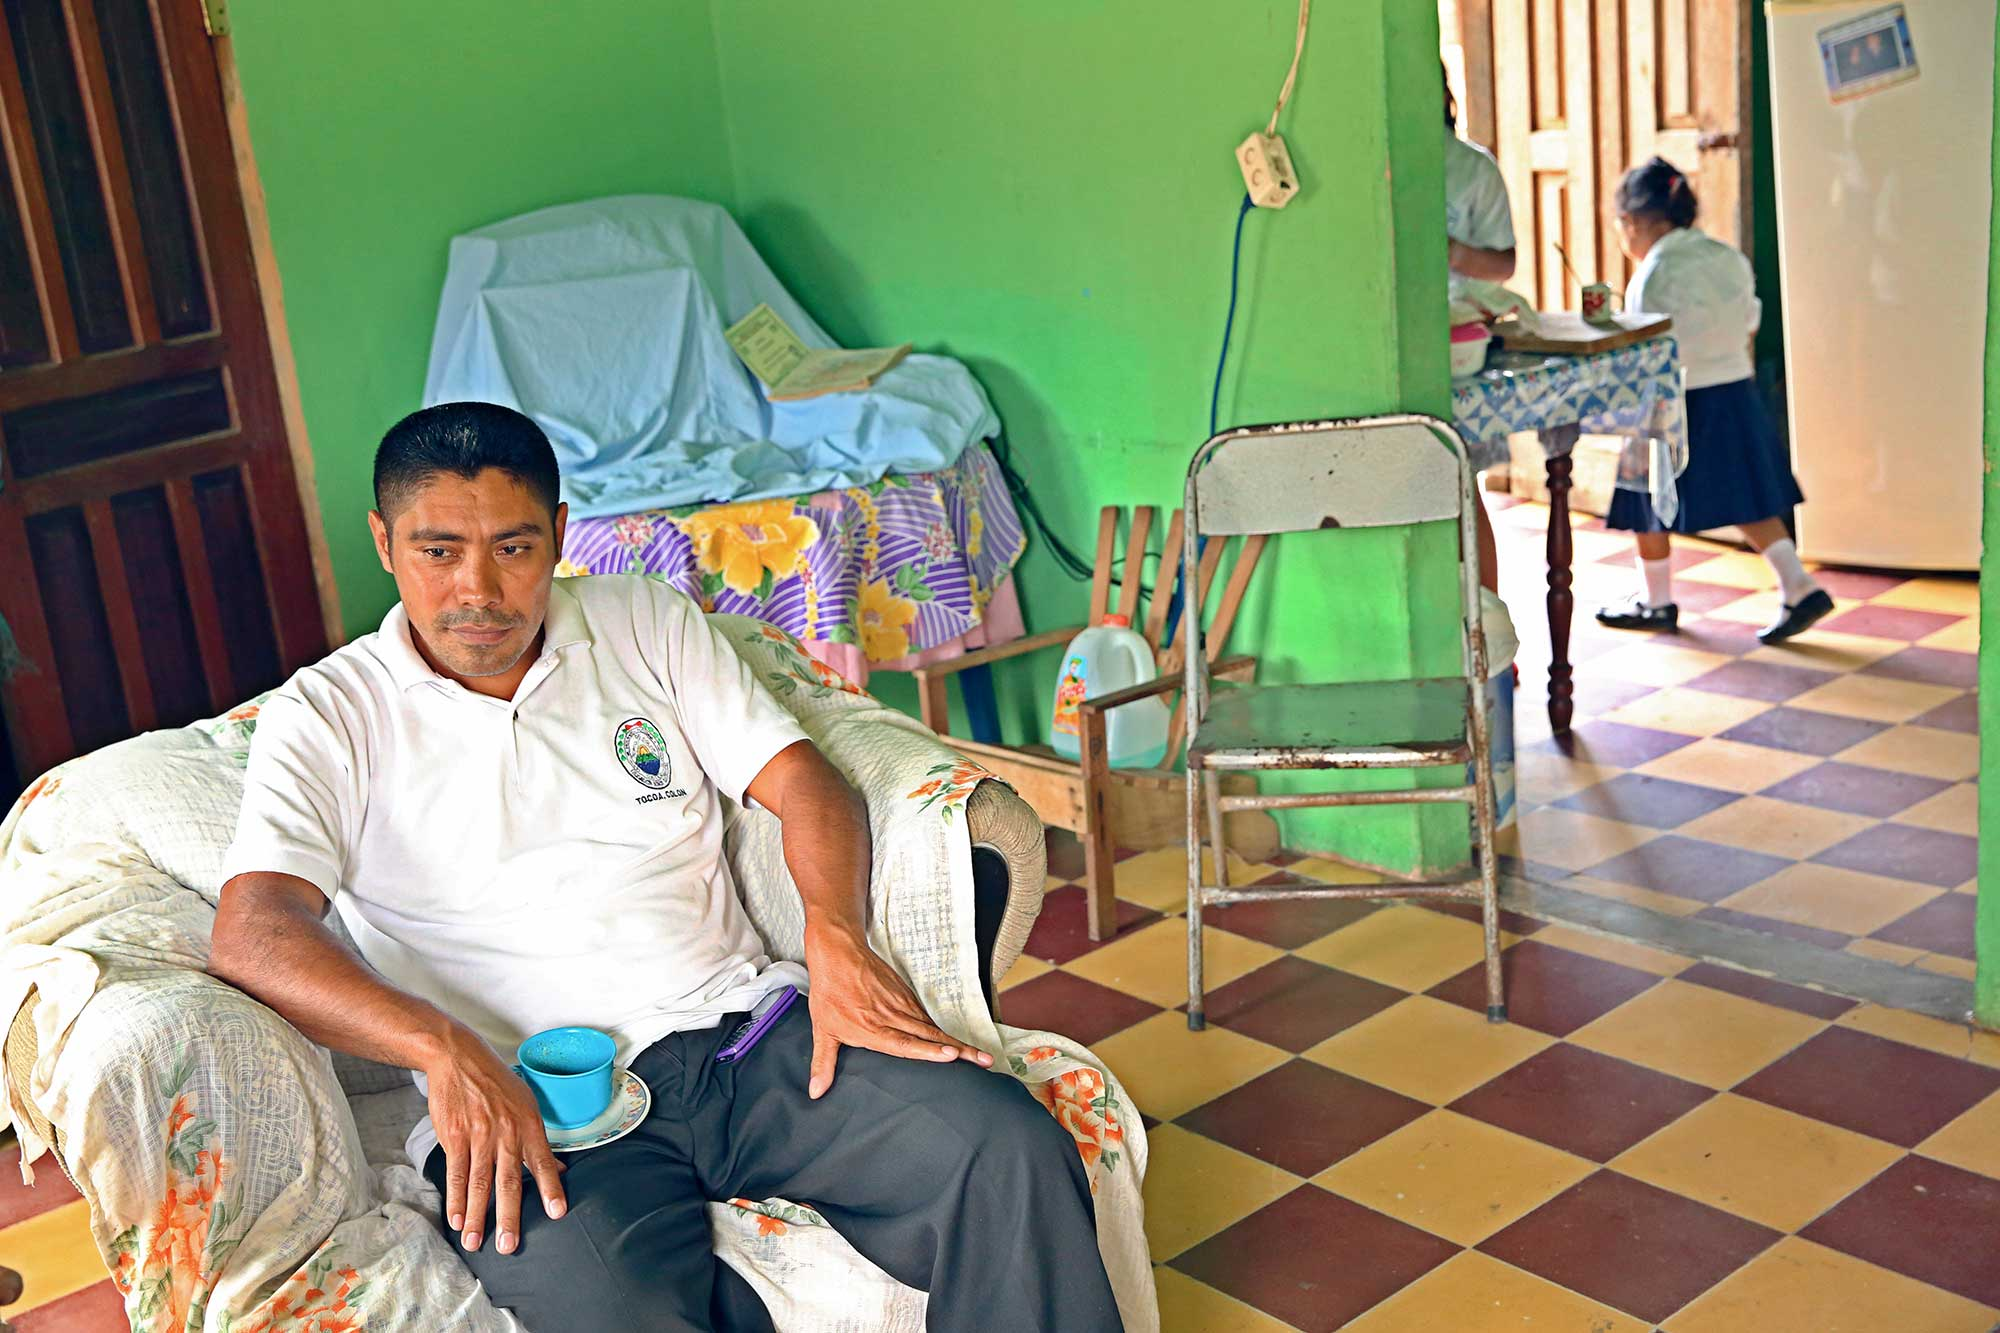 Nicolas Rosales sits in his living room, one of his daughters walks through in the background.